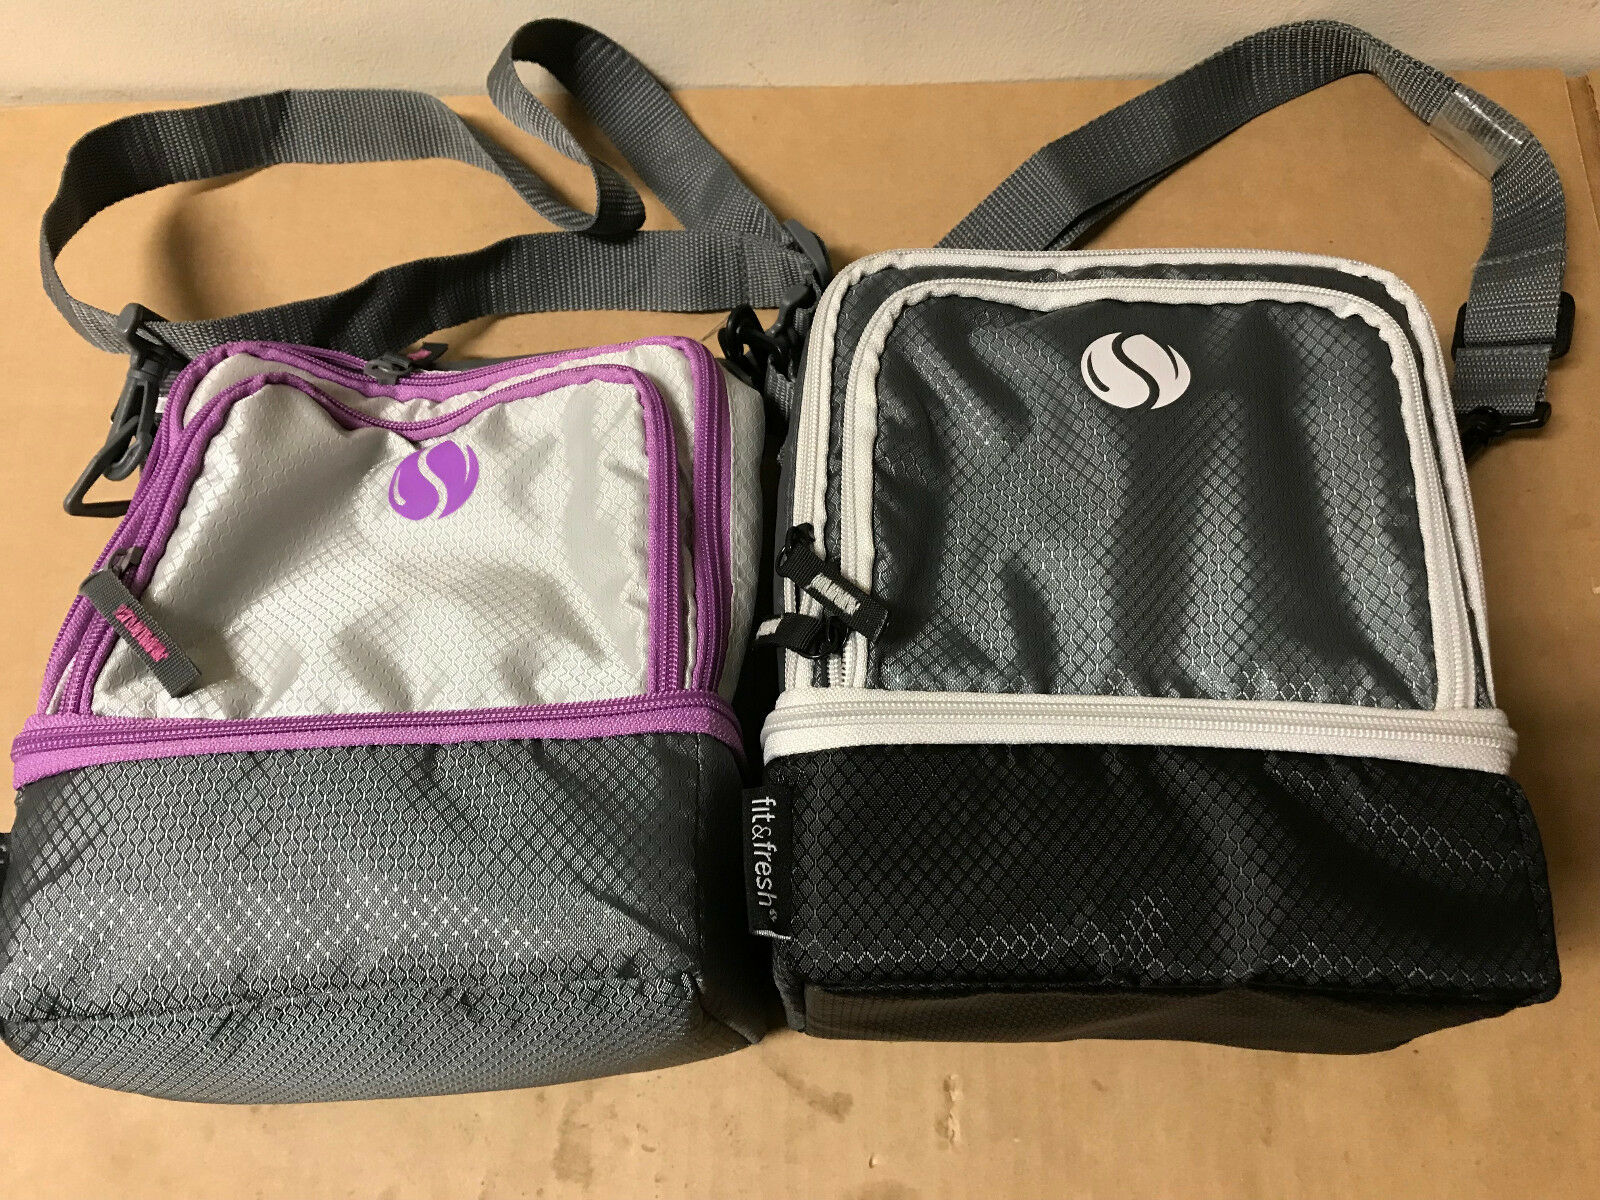 Fit & Fresh Small Cooler Bag & Lunch Box, Insulated with Adj